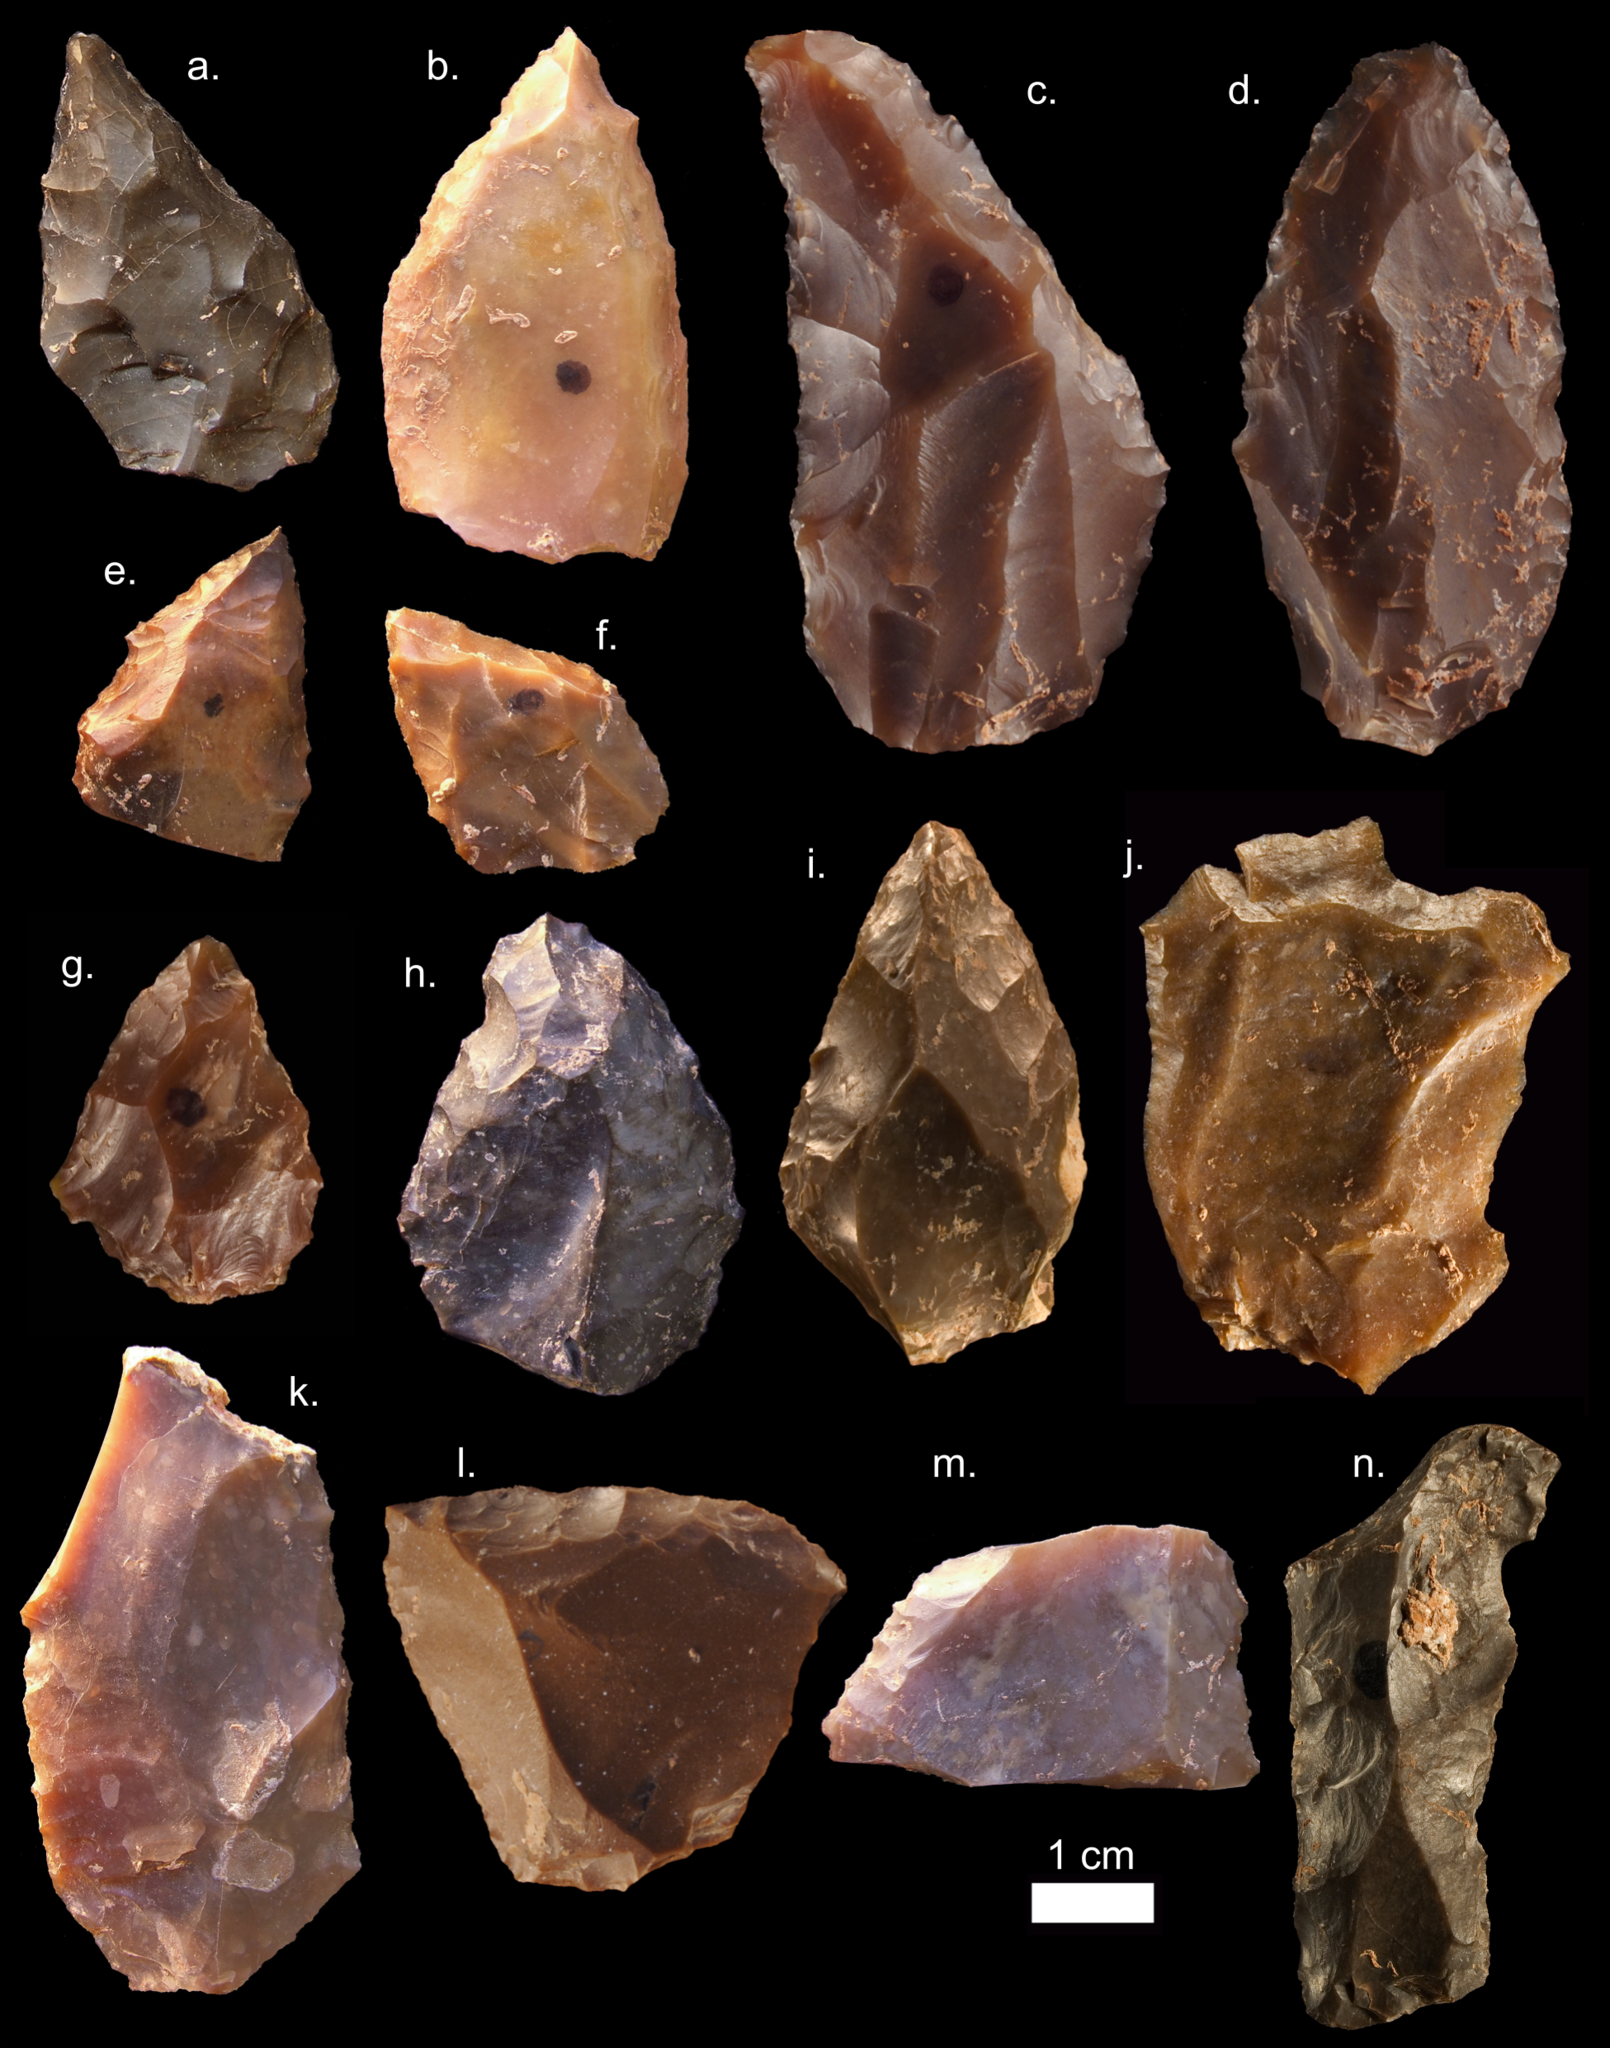 Some of the Middle Stone Age stone tools from Jebel Irhoud in Morocco. Pointed forms (a-i) are common, as are the Levellois prepared core flakes (j-k).